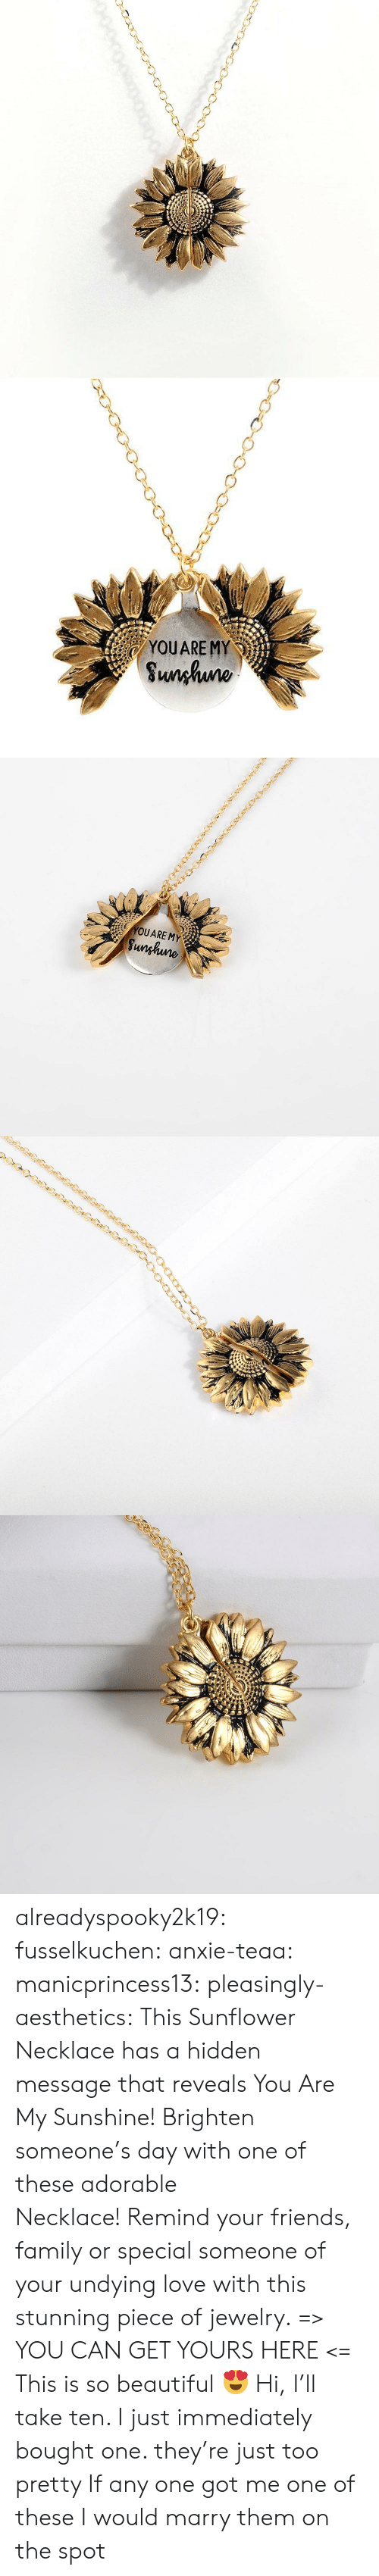 Beautiful, Family, and Friends: YOUARE MY  Sunhuno   YOUARE MY  Sunghune alreadyspooky2k19:  fusselkuchen:  anxie-teaa:  manicprincess13:  pleasingly-aesthetics: This Sunflower Necklace has a hidden message that reveals You Are My Sunshine! Brighten someone's day with one of these adorable Necklace! Remind your friends, family or special someone of your undying love with this stunning piece of jewelry. => YOU CAN GET YOURS HERE <=   This is so beautiful 😍   Hi, I'll take ten.   I just immediately bought one. they're just too pretty   If any one got me one of these I would marry them on the spot